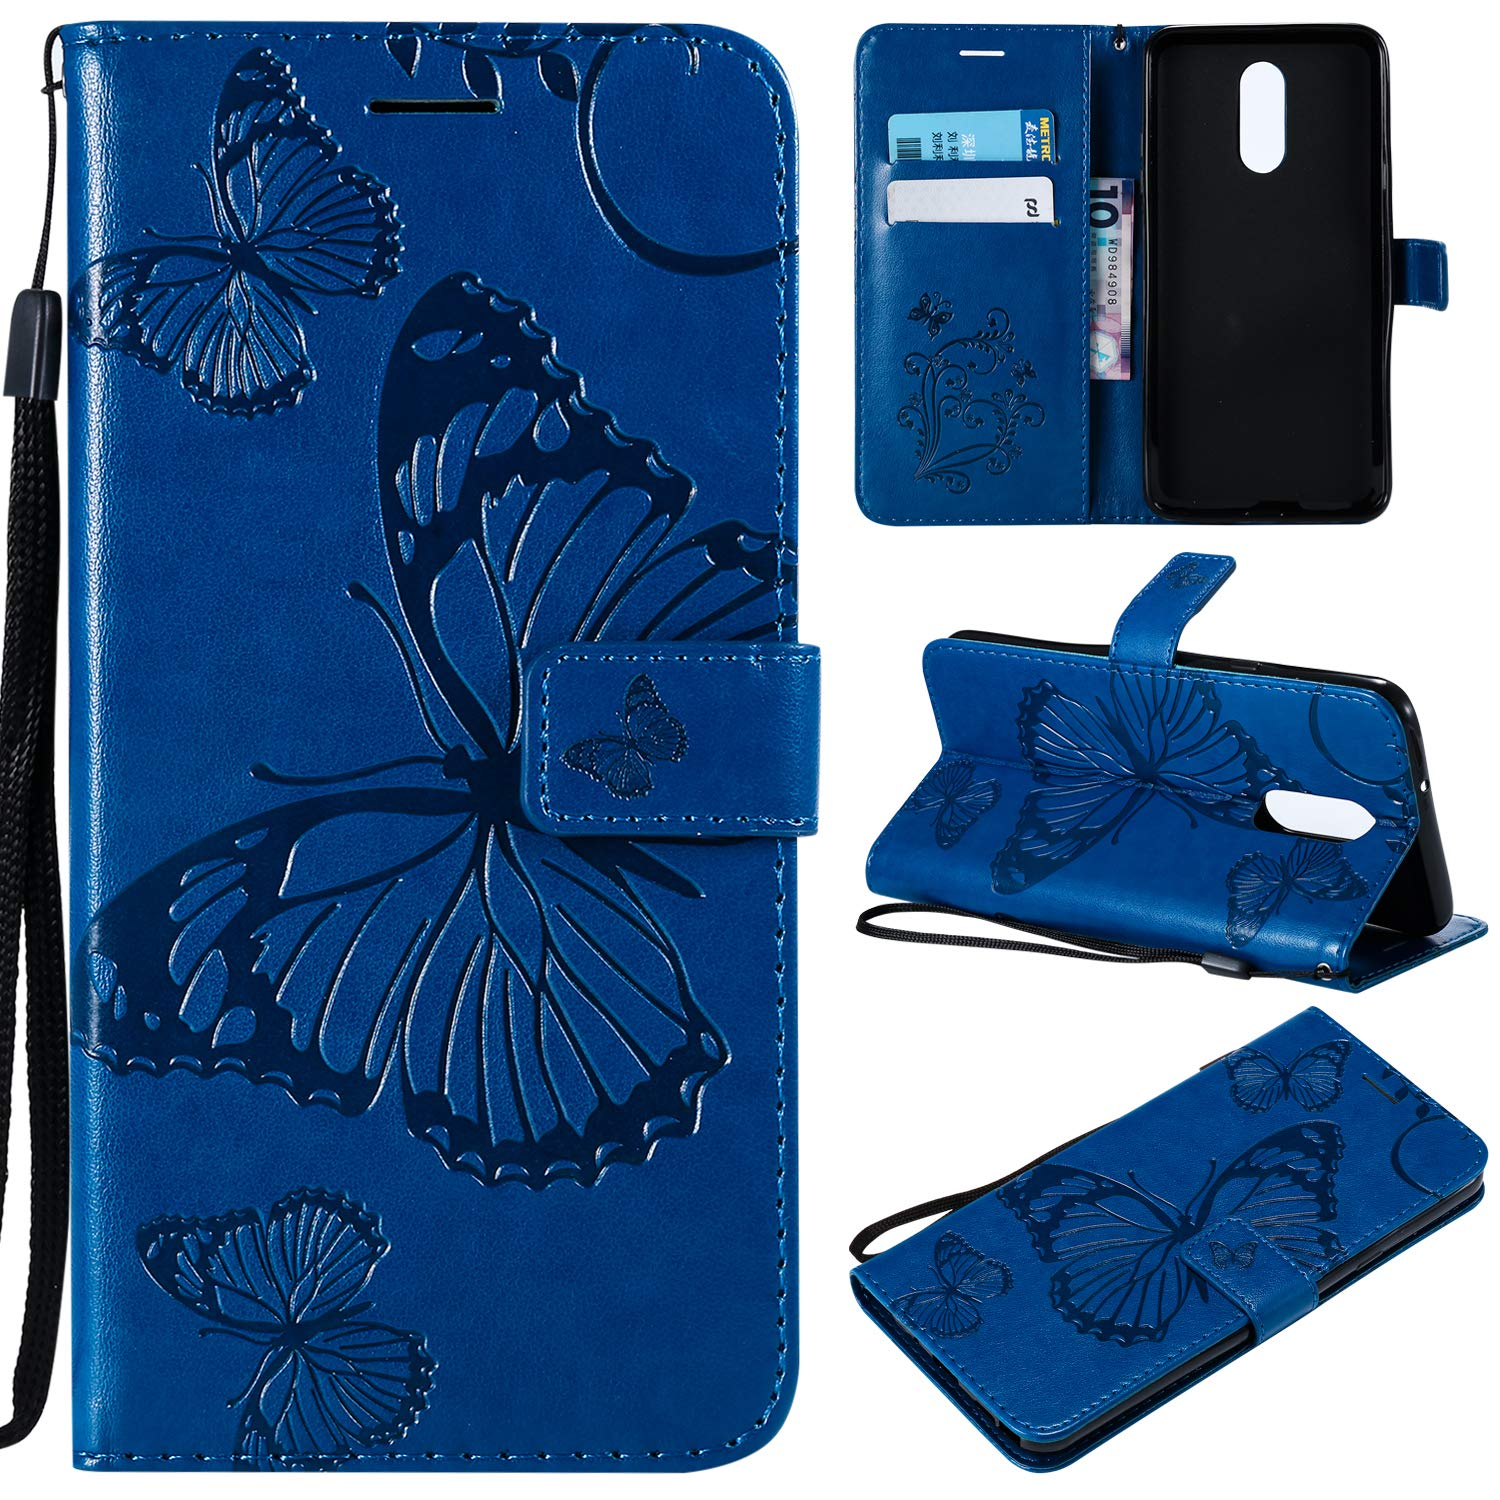 Cmeka Emboss Butterfly Wallet Case for LG Stylo 4,Wrist Strap,Flip PU Leather Magnetic Closure,Card Slots,Kickstand Function (Blue)